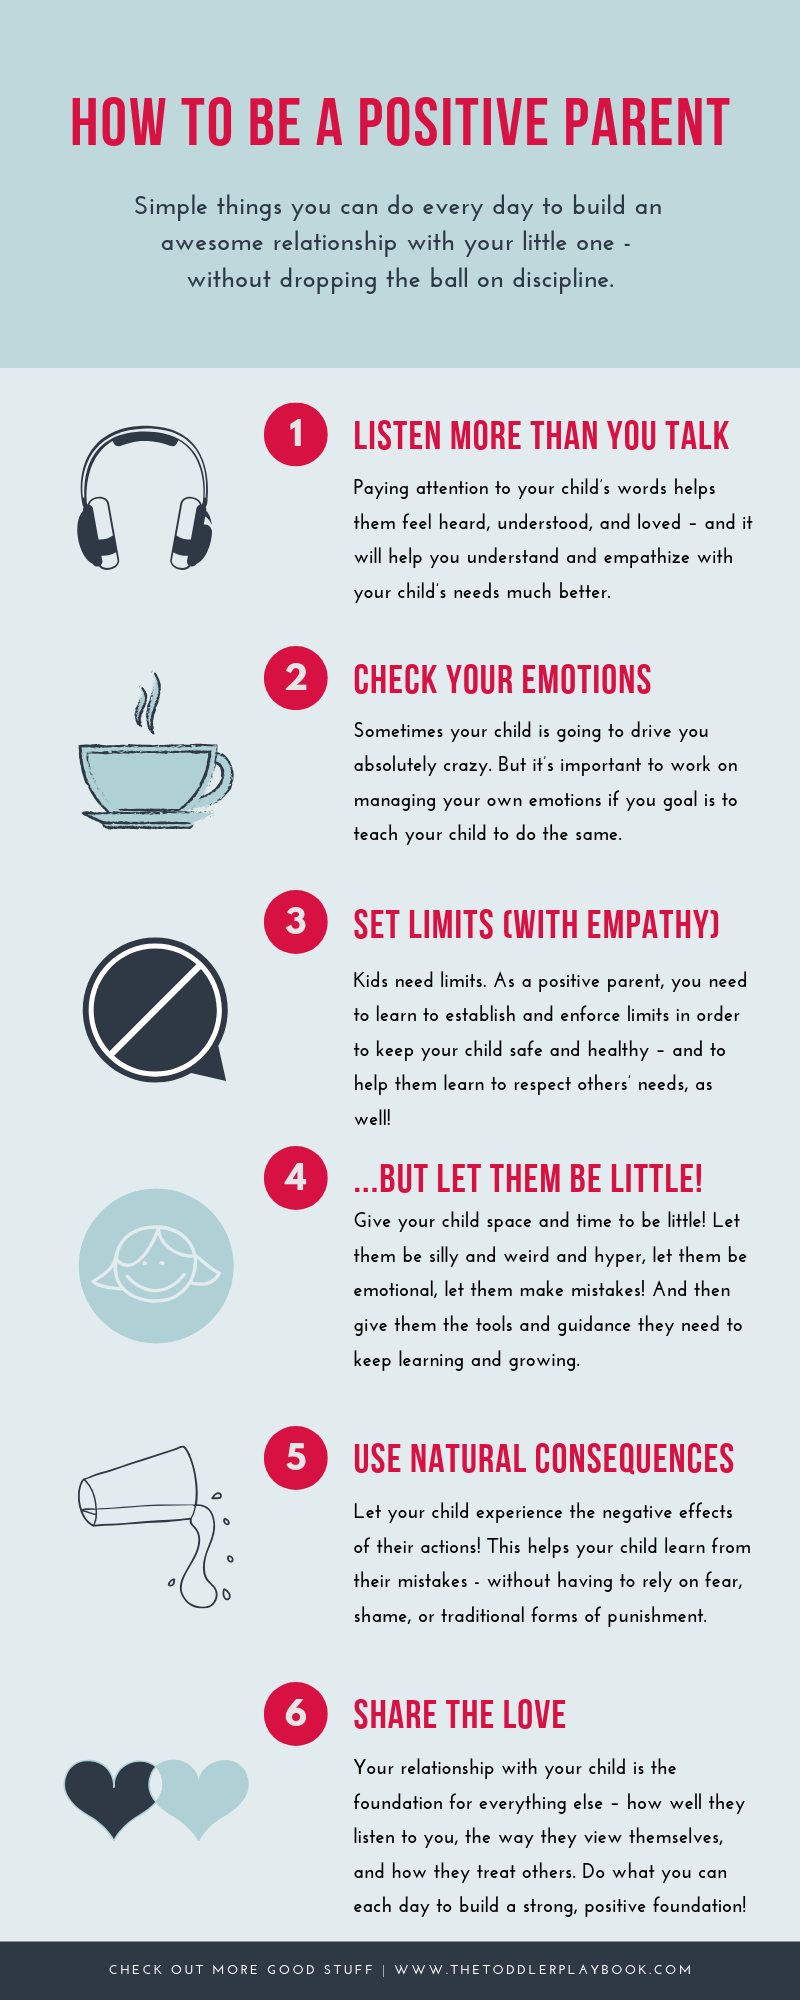 6 Simple Positive Parenting Ideas and Tips For Toddler Parents. What to do every day to nurture a positive relationship with your child built on respect and healthy communication - from actively listening to your toddler to using natural consequences and other positive discipline strategies. Click through for more details!  #positiveparenting #parenting #toddlerparentingtips #toddlertips #toddlerlife #loveandlogic